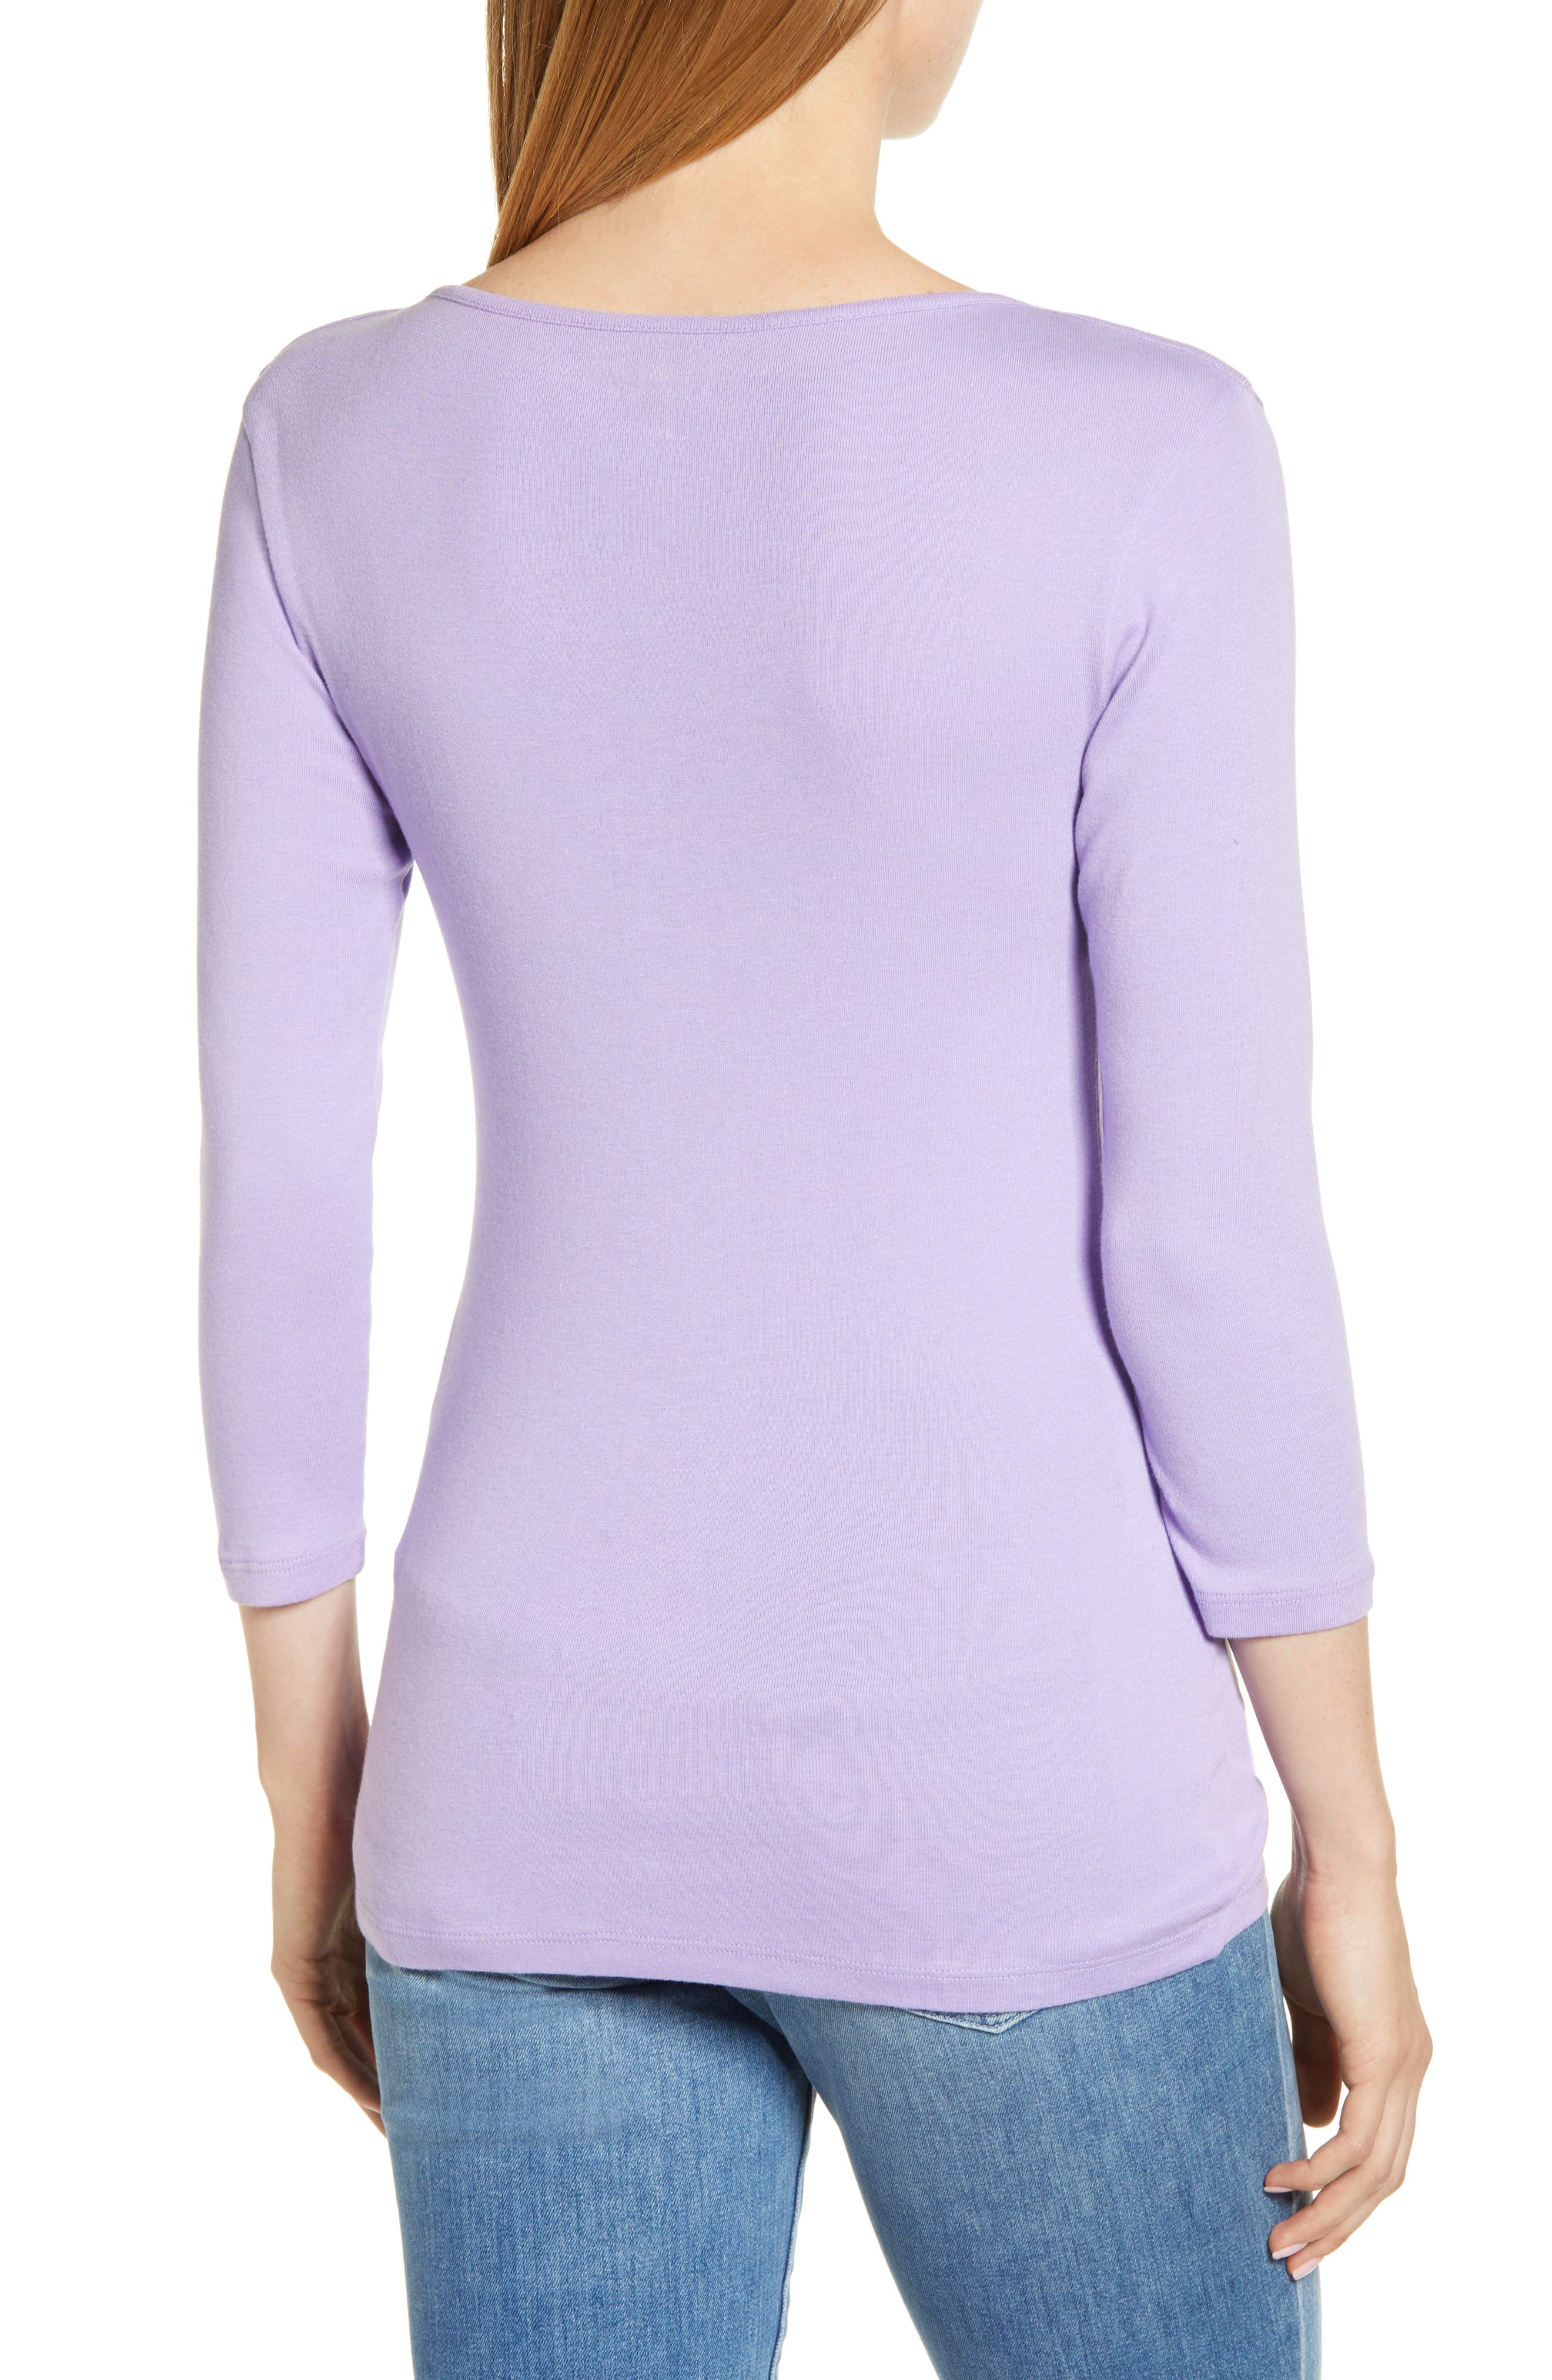 7d2770bb31a24 Women s 3 4 Sleeve Tops